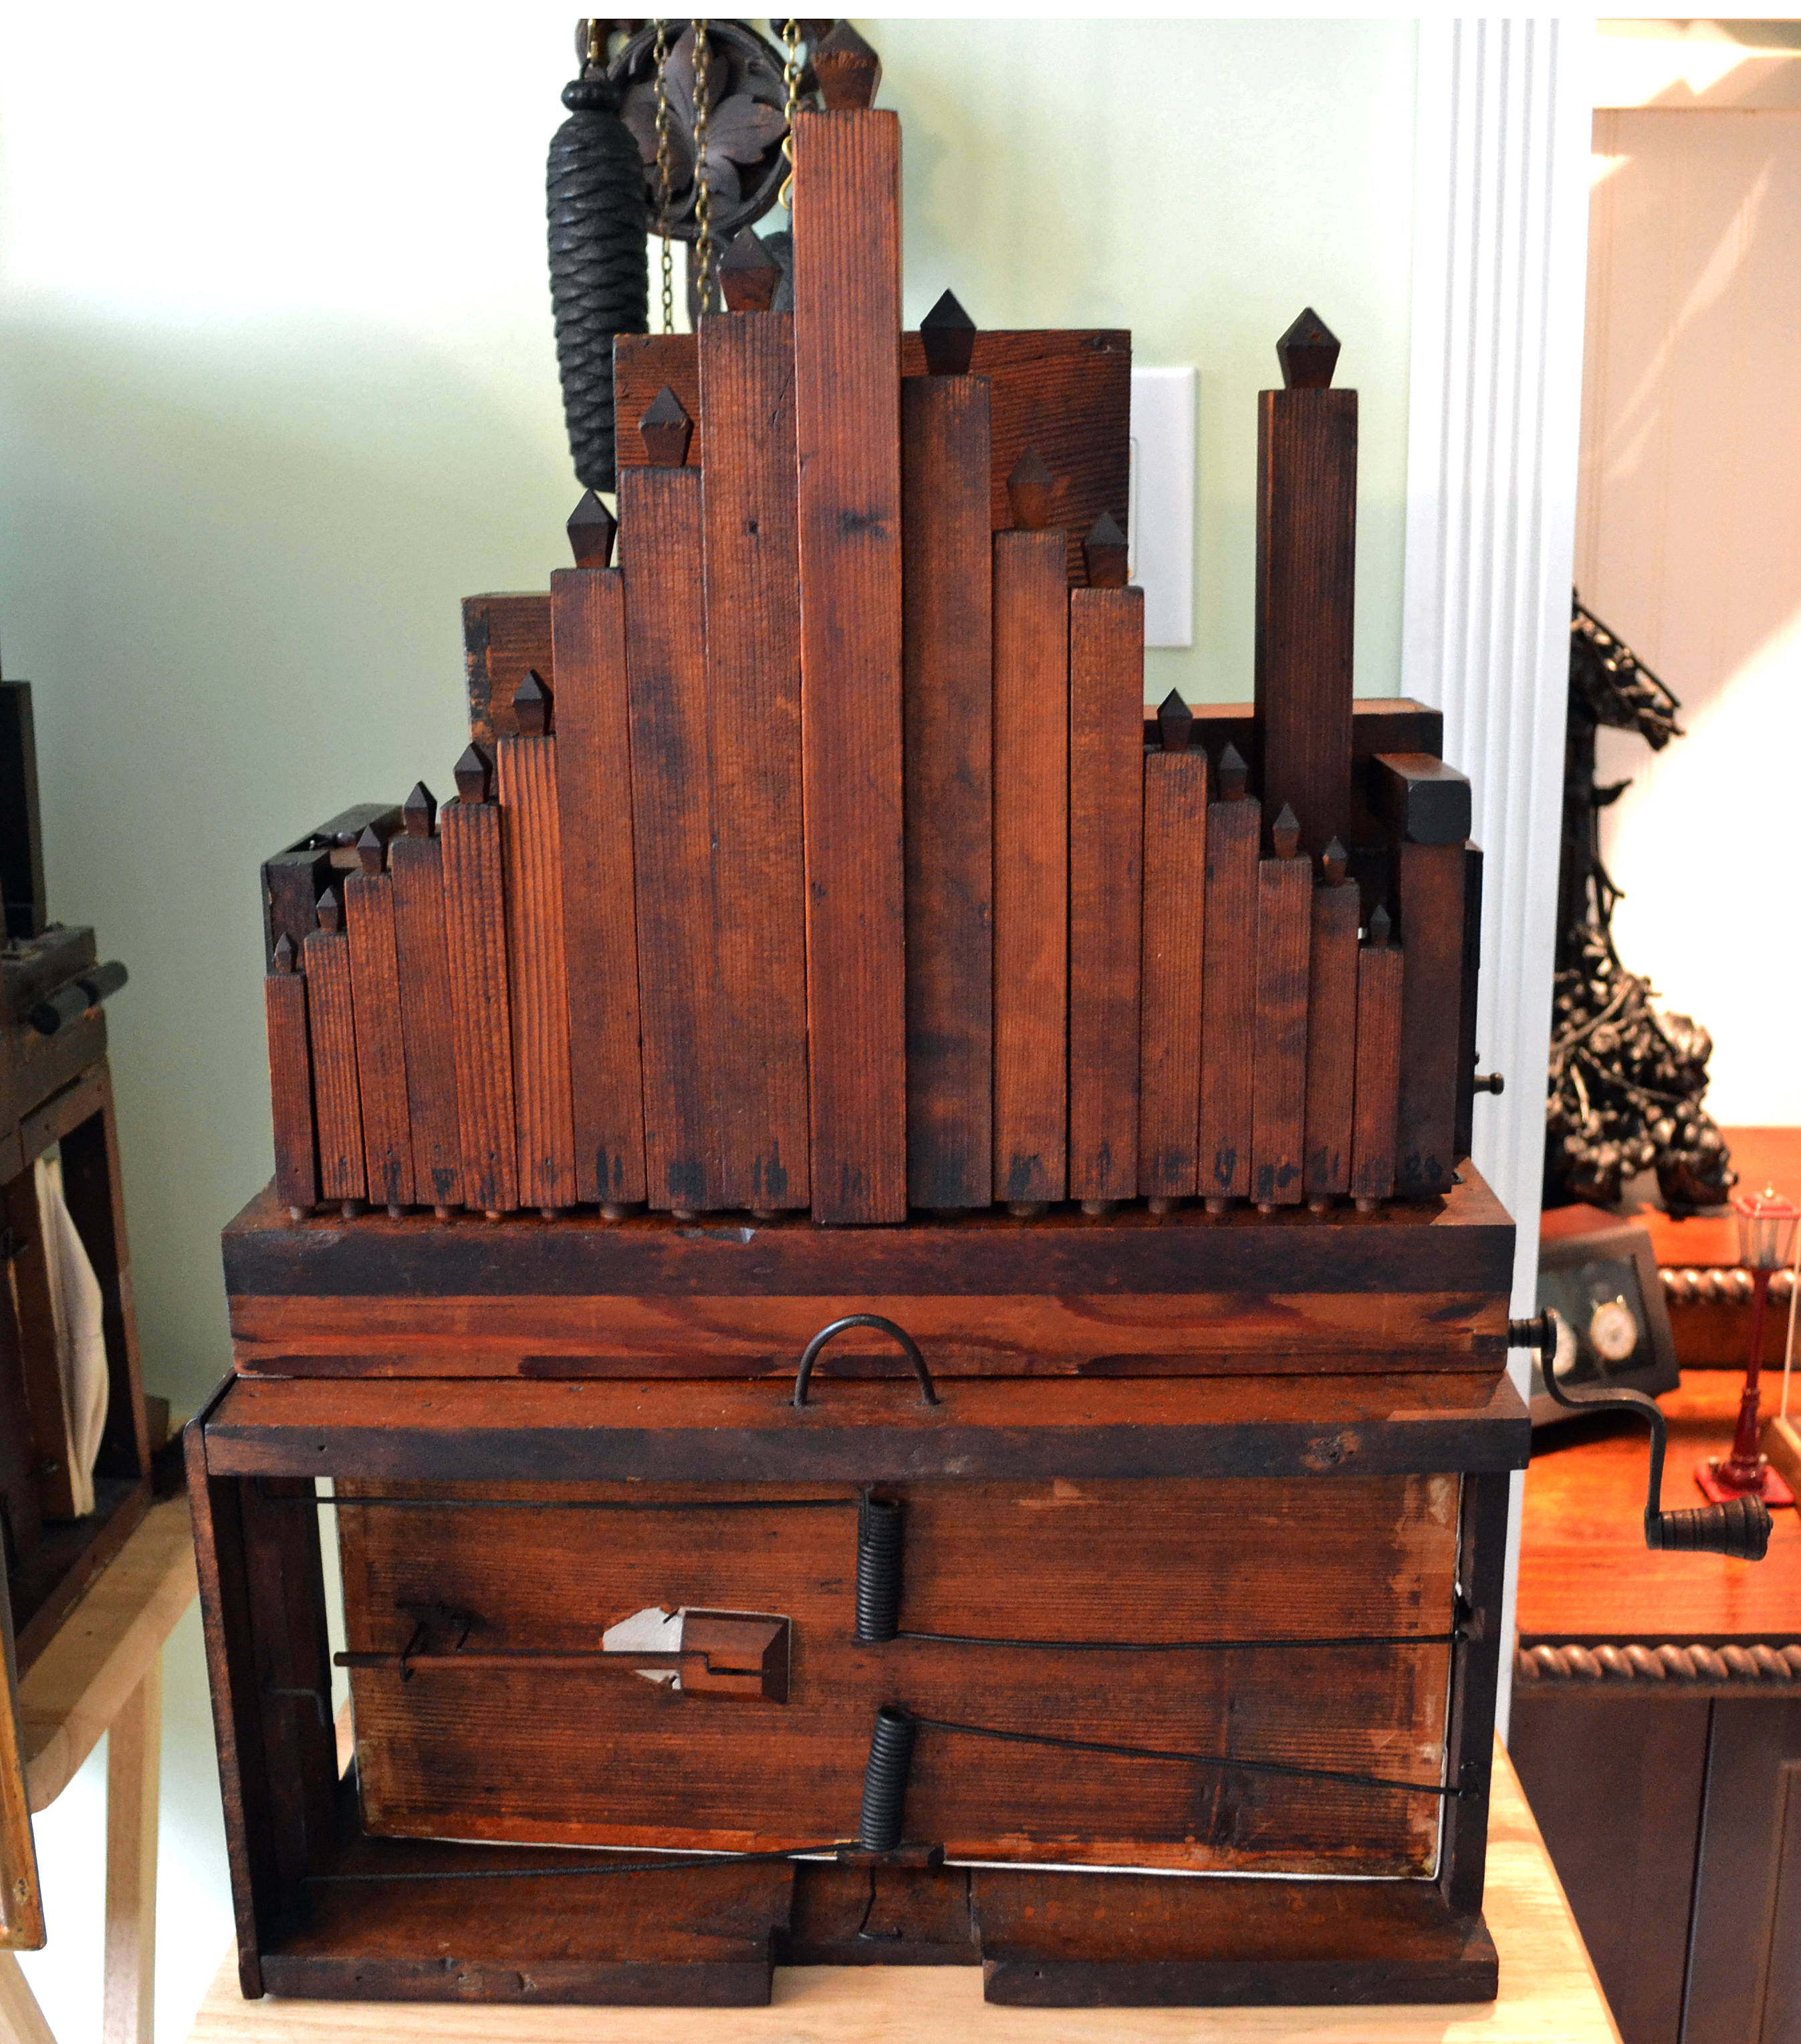 Black Forest Organ Clock 23 pipes